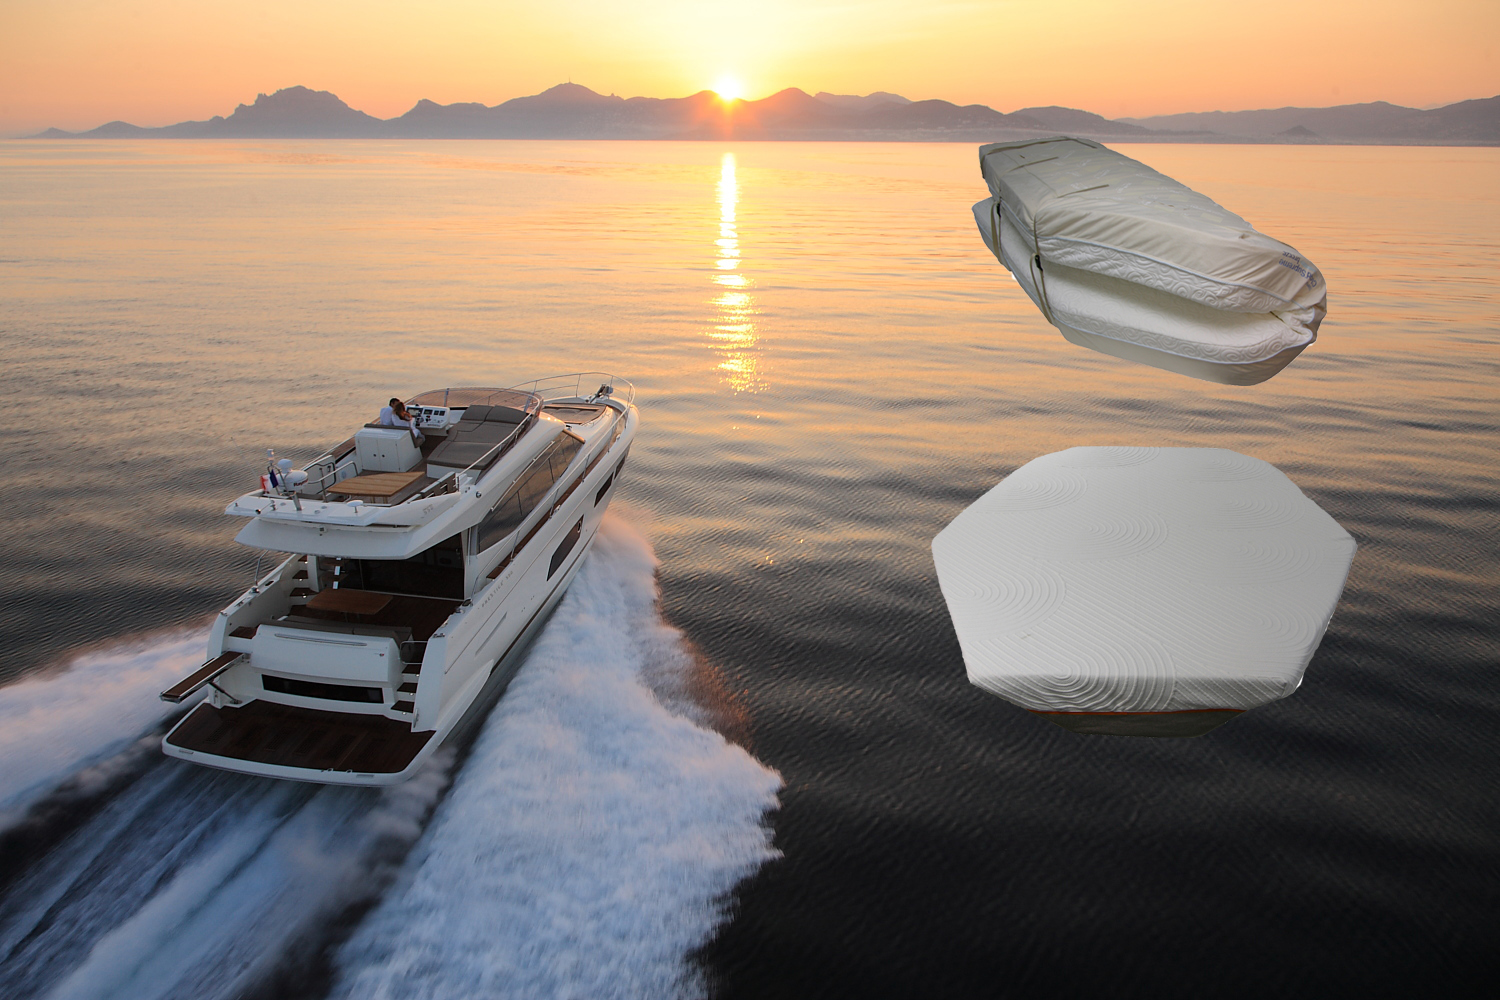 Tempur Pedic Bed for your Power Yacht